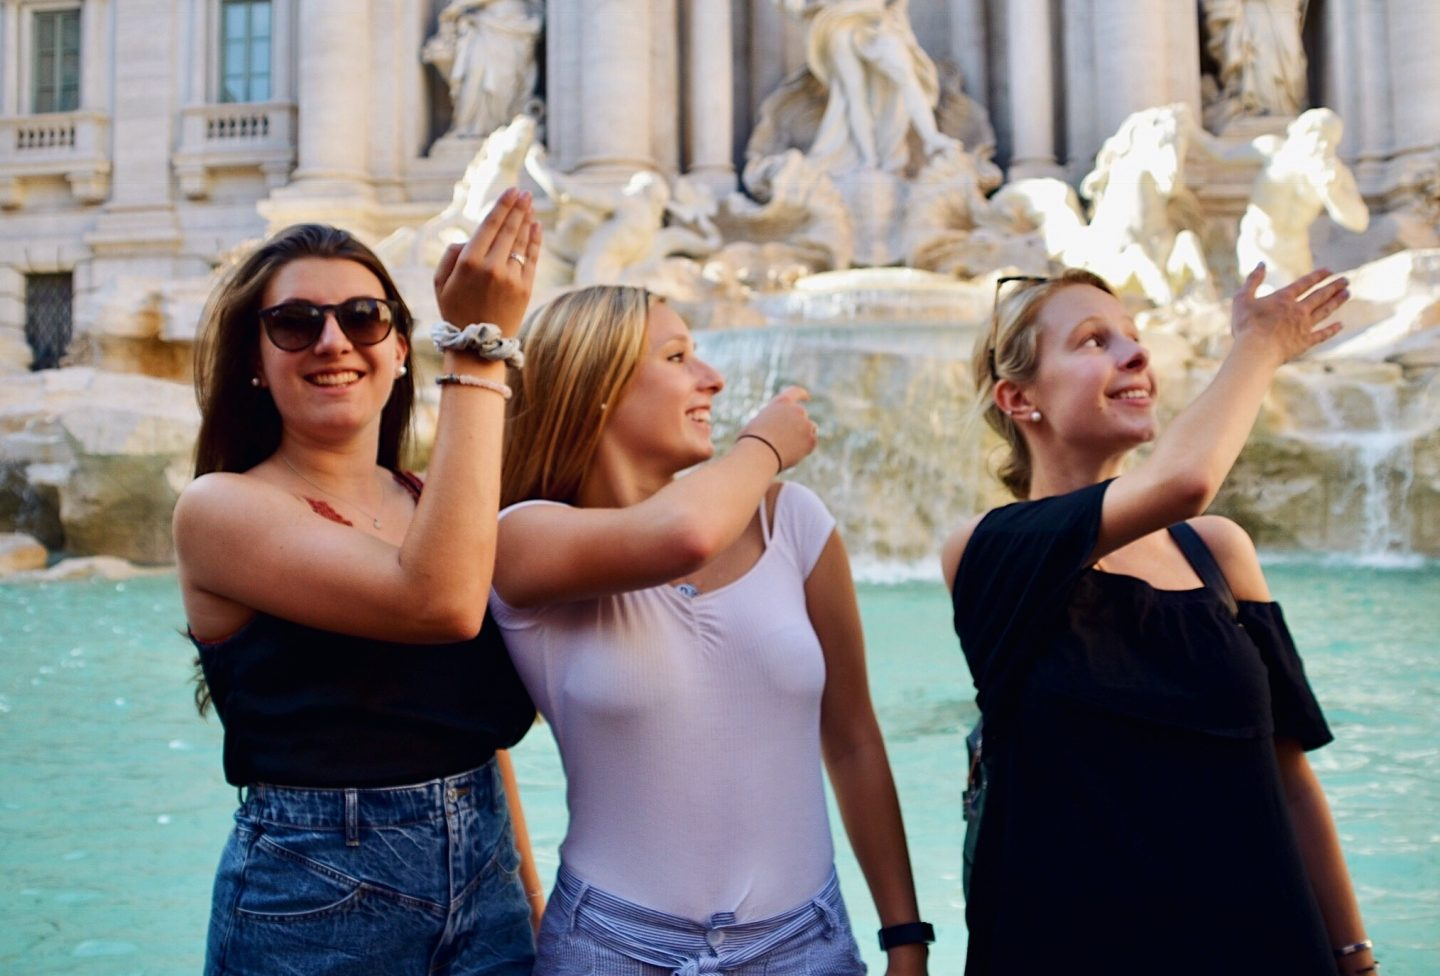 Throwing a coin into the Trevi Fountain in Rome, Italy